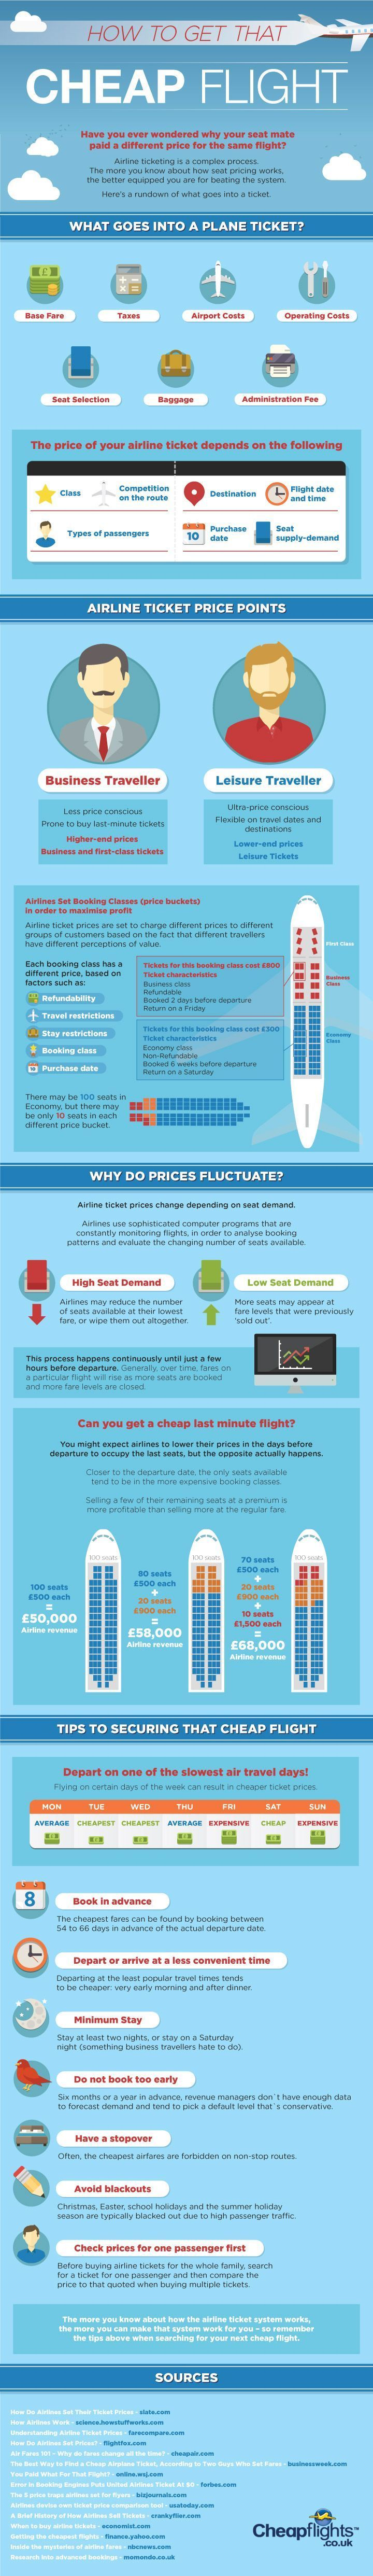 Some of the information on this graphic will surprise you. What to look for when booking a cheap flight.